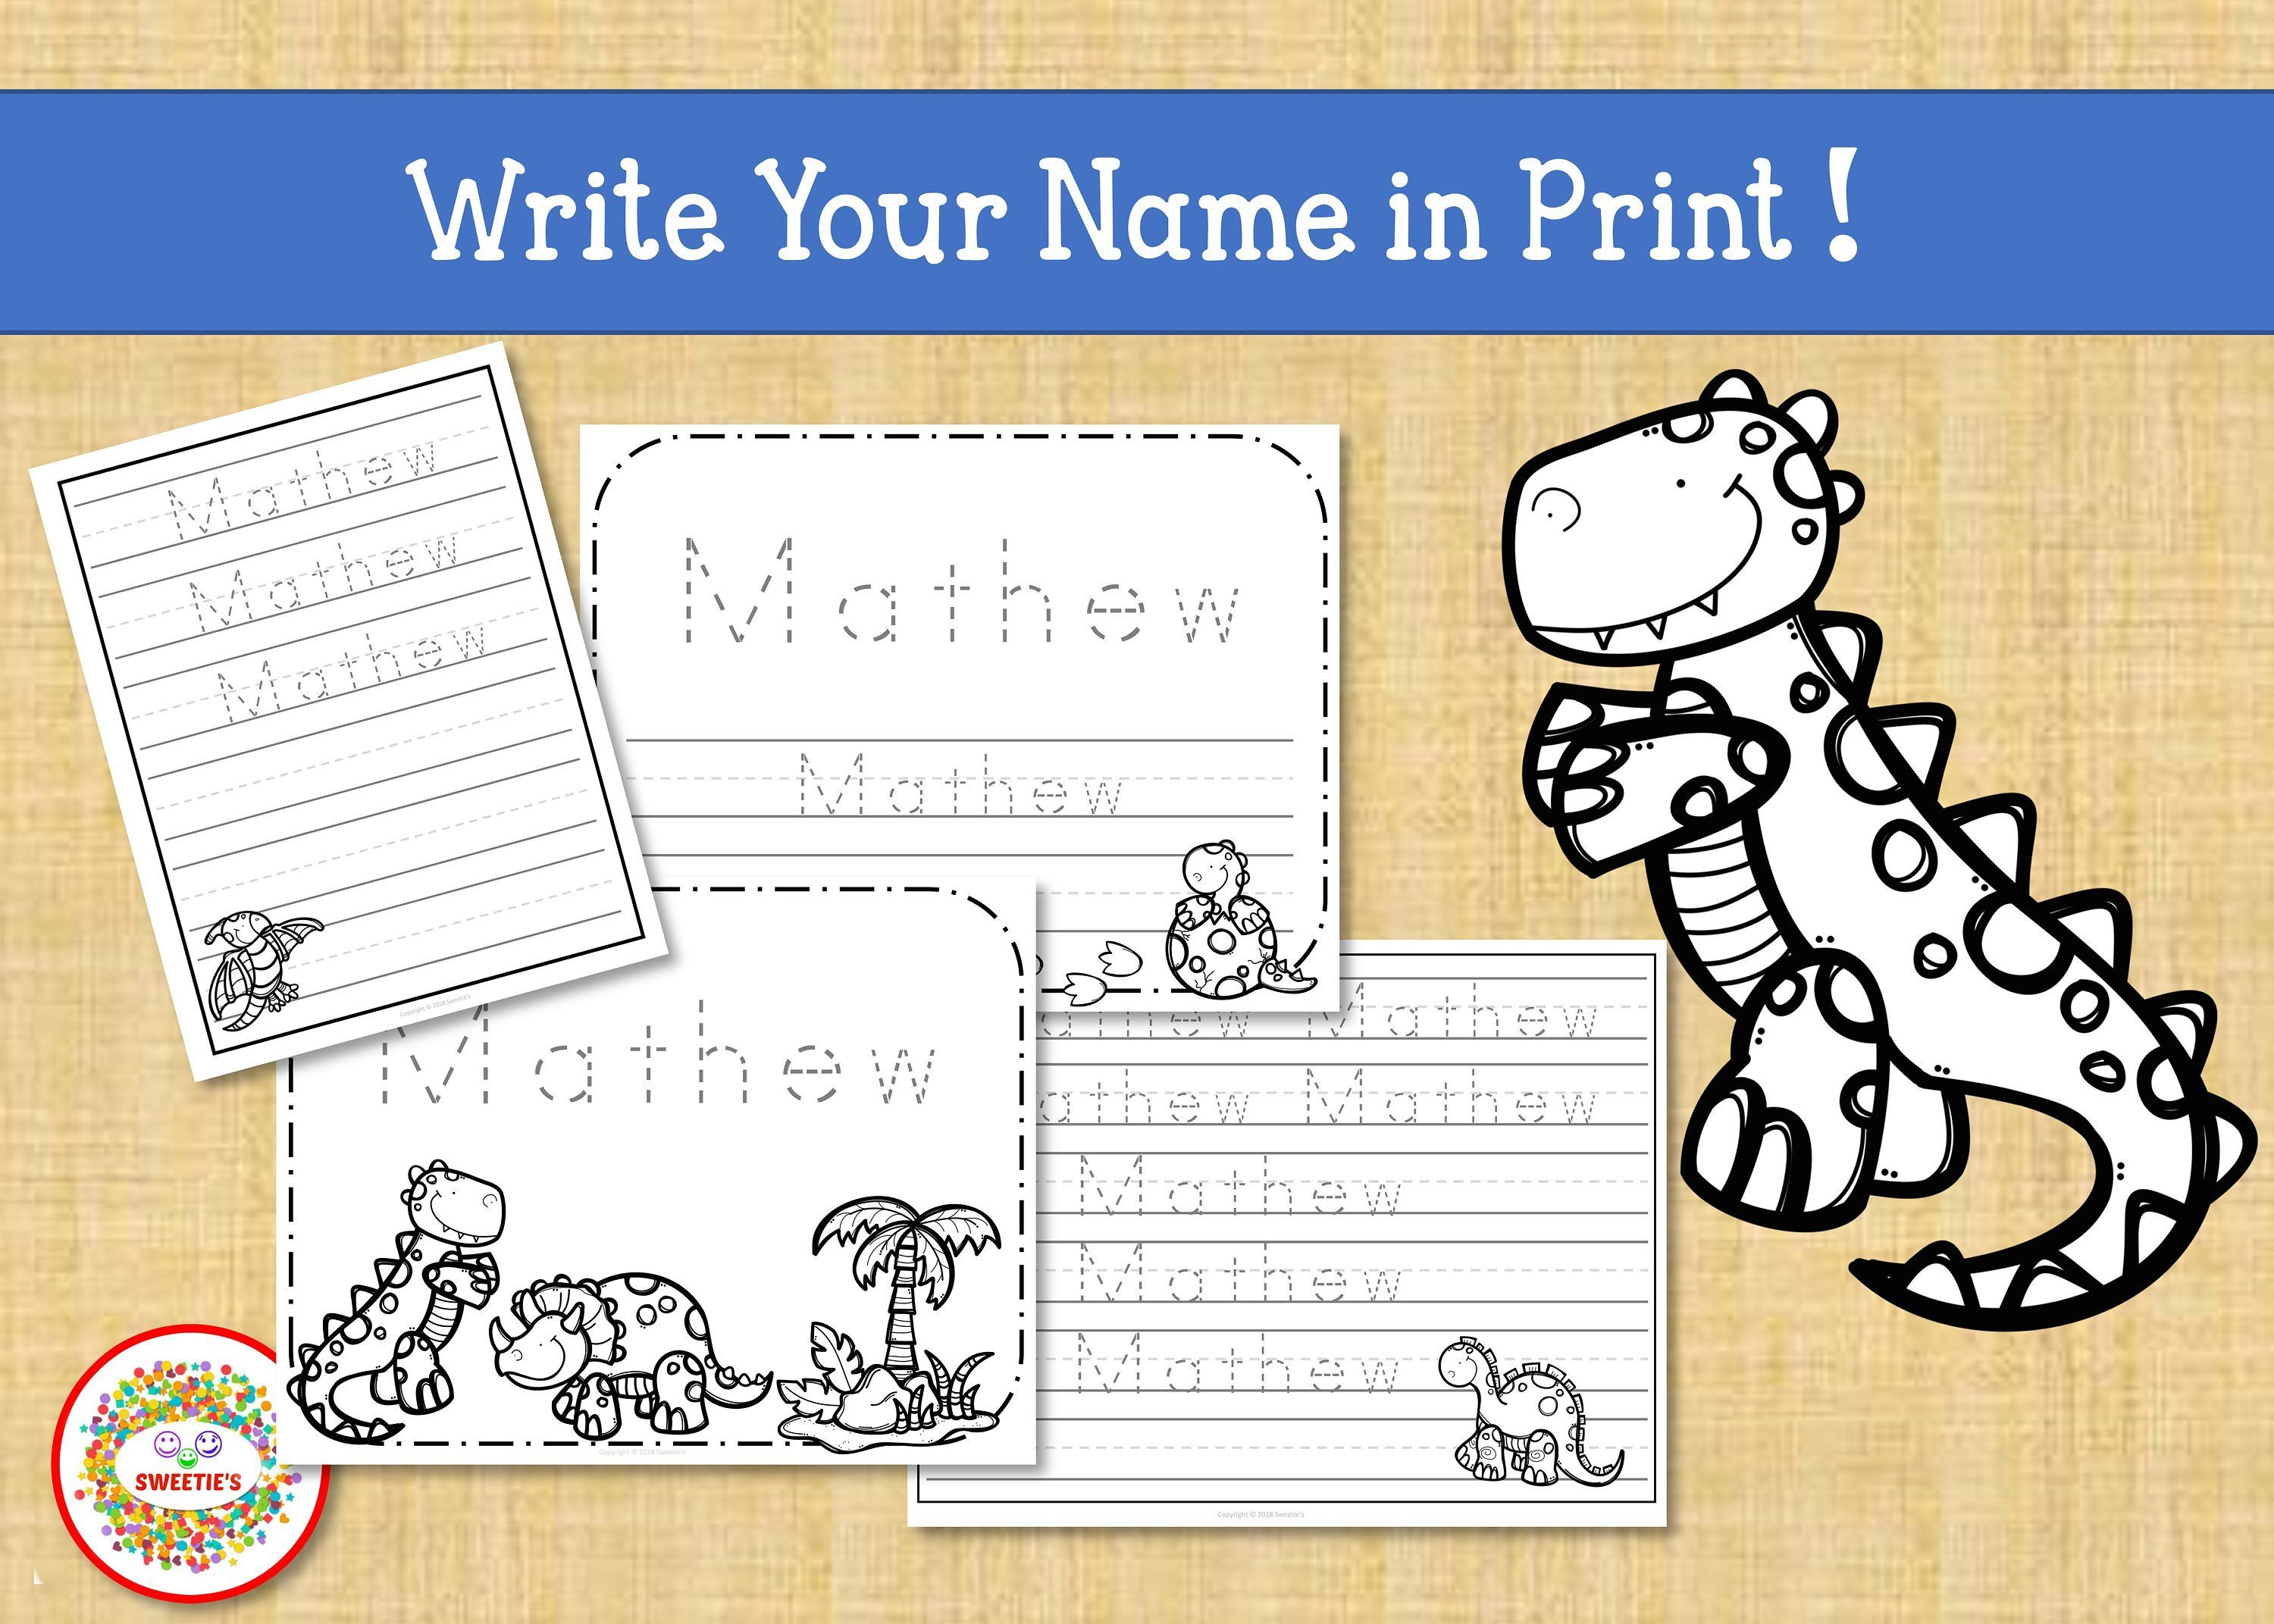 Name Tracing Worksheet First Grade Letter Writing Paper Etsy Handwriting Worksheets Writing Worksheets Handwriting Practice